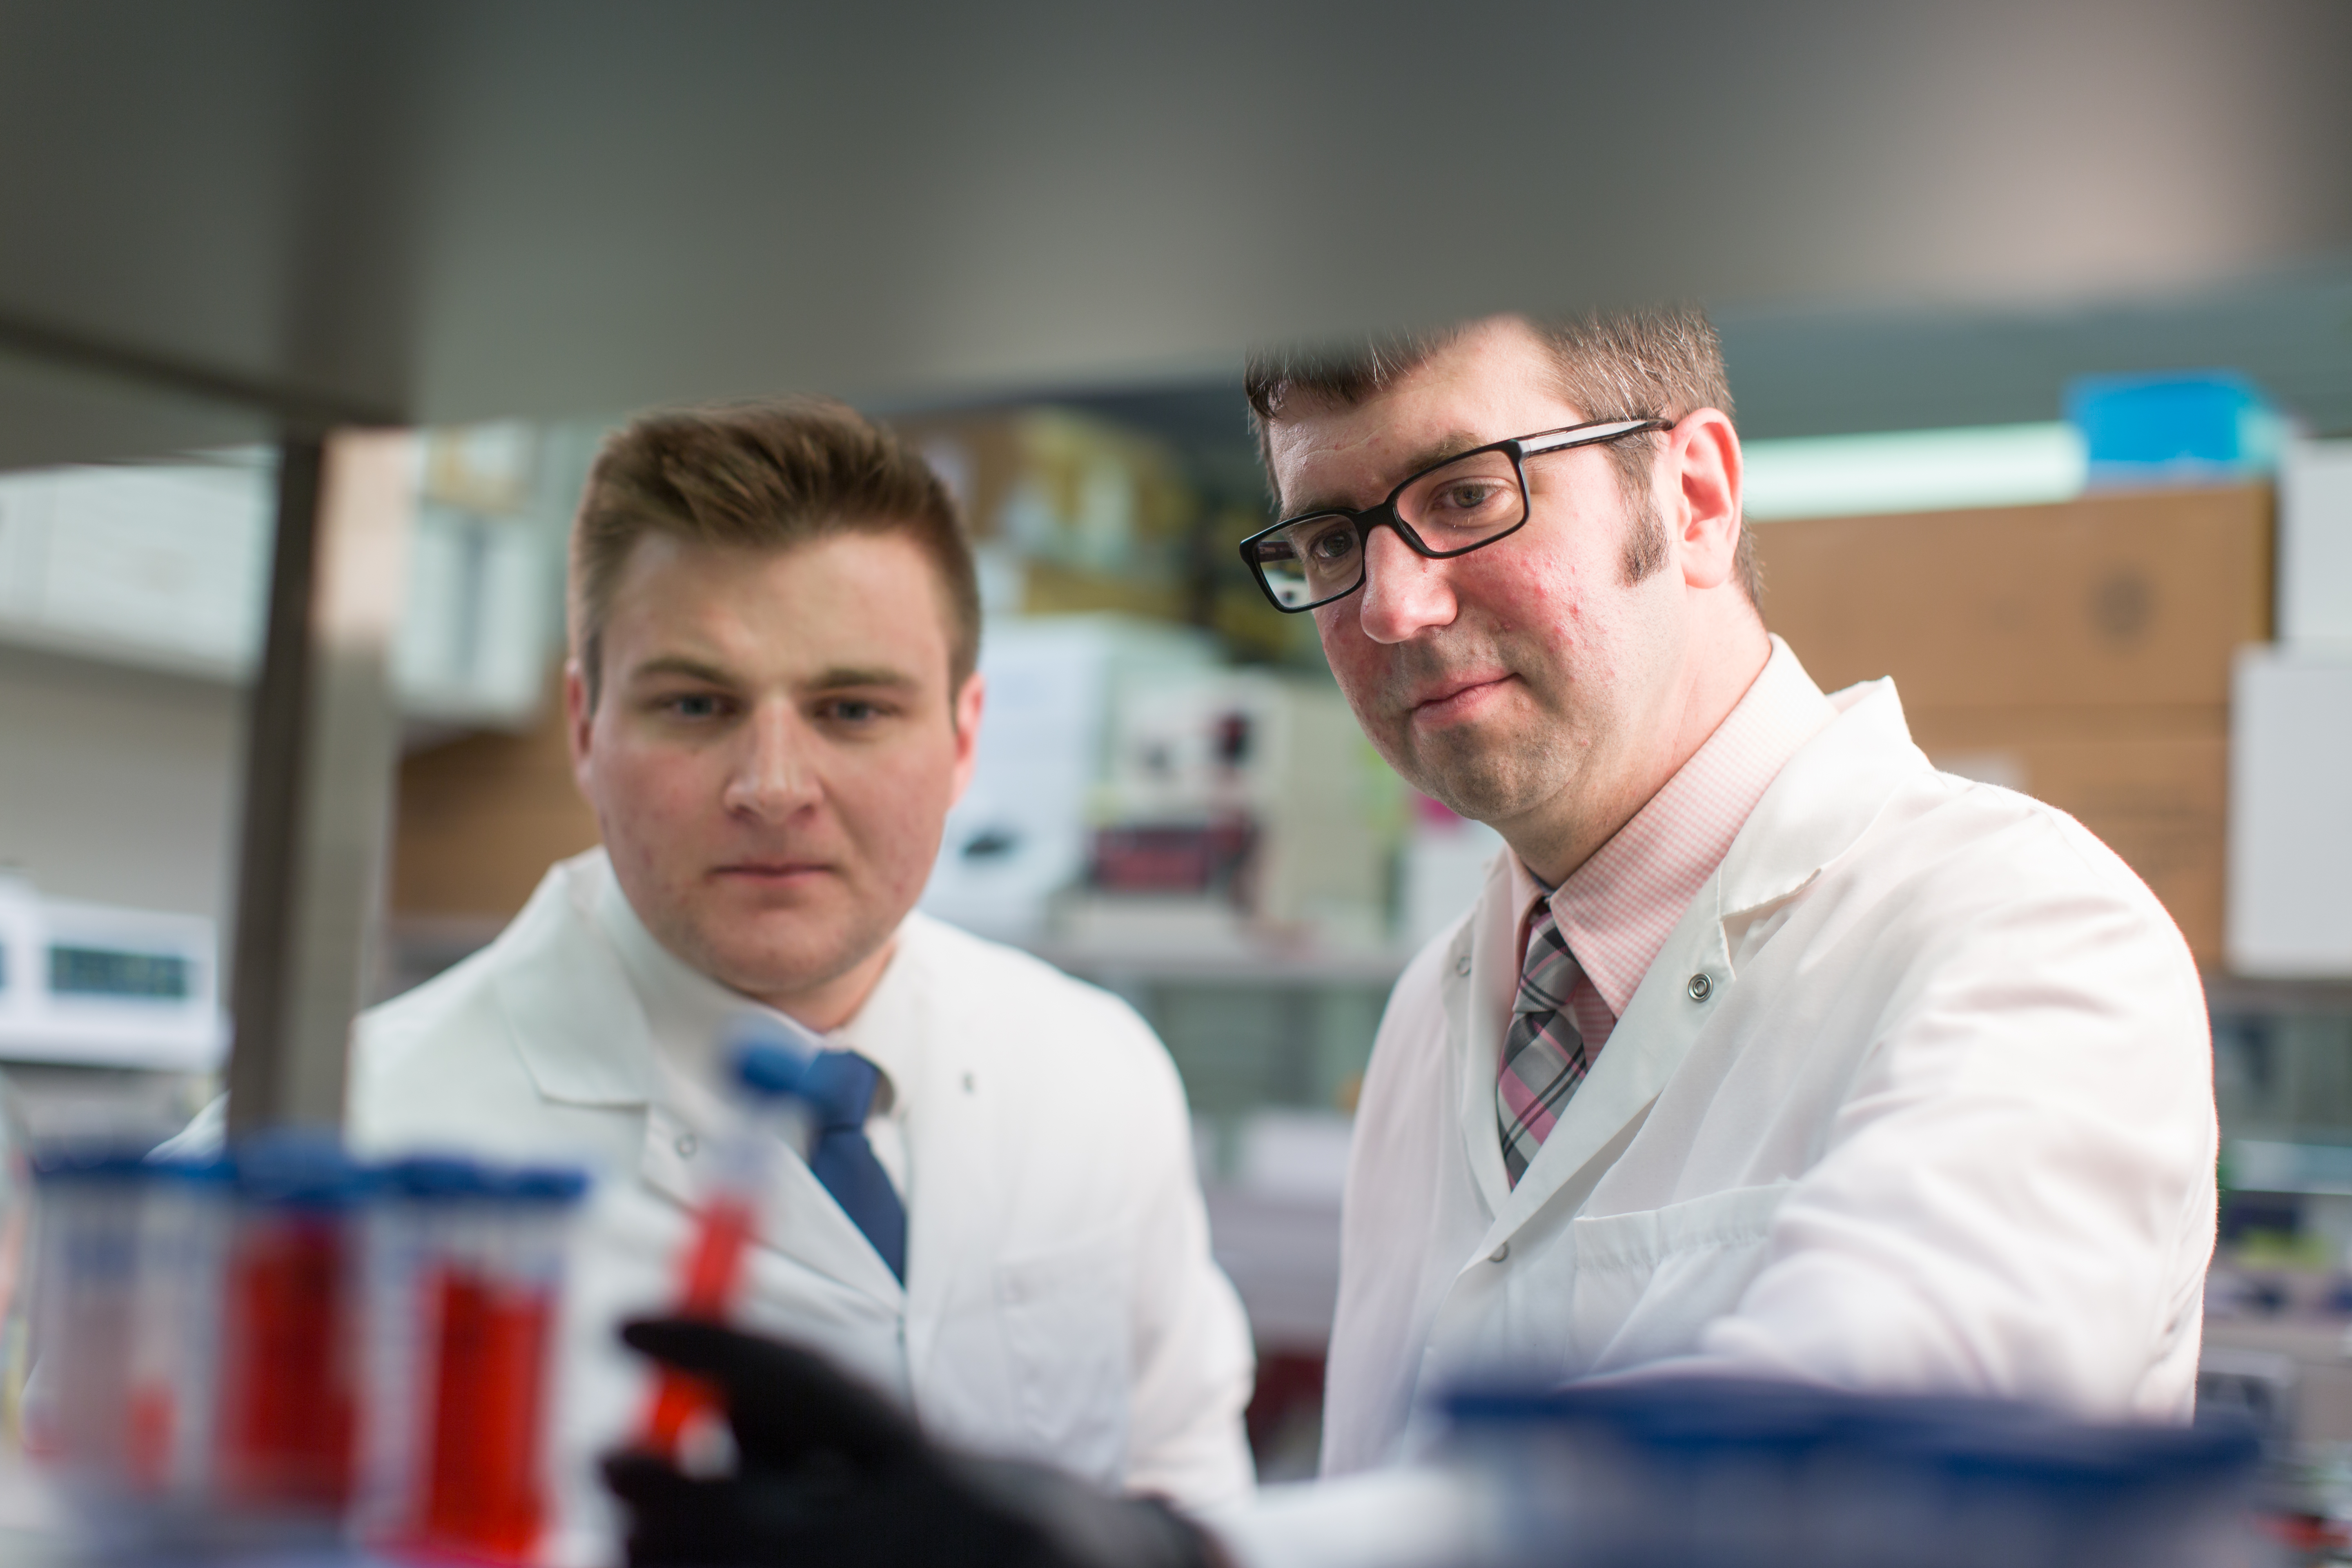 Tyler Bussian and Darren Baker, Ph.D., looking at sample tubes